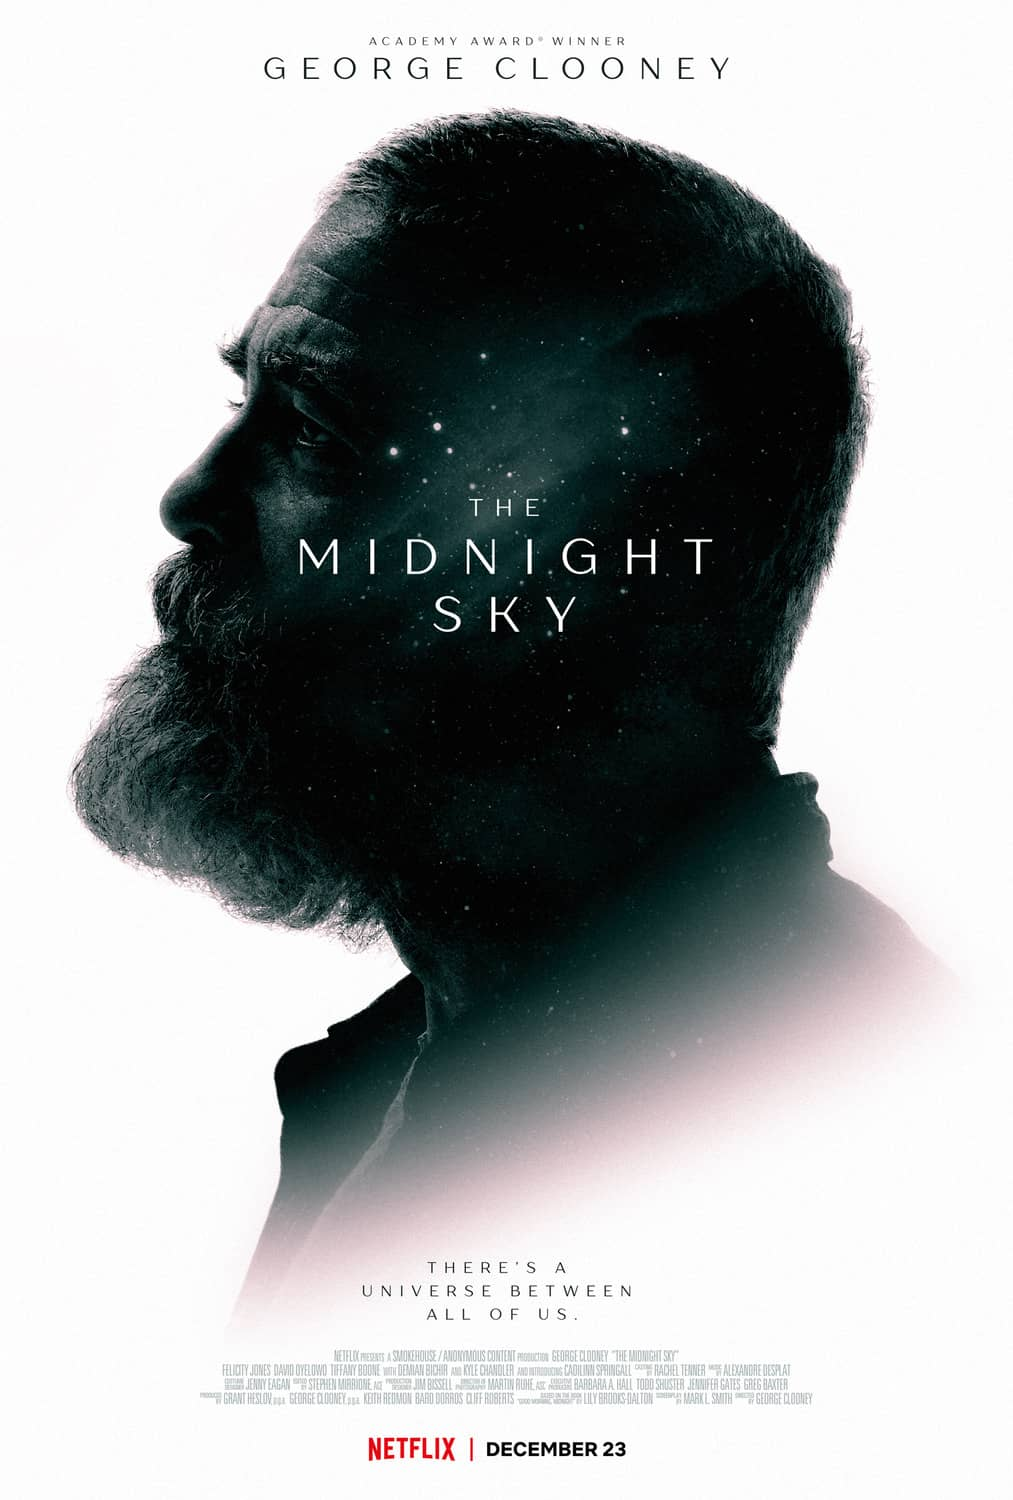 The Midnight Sky Movie Poster Netflix George Clooney